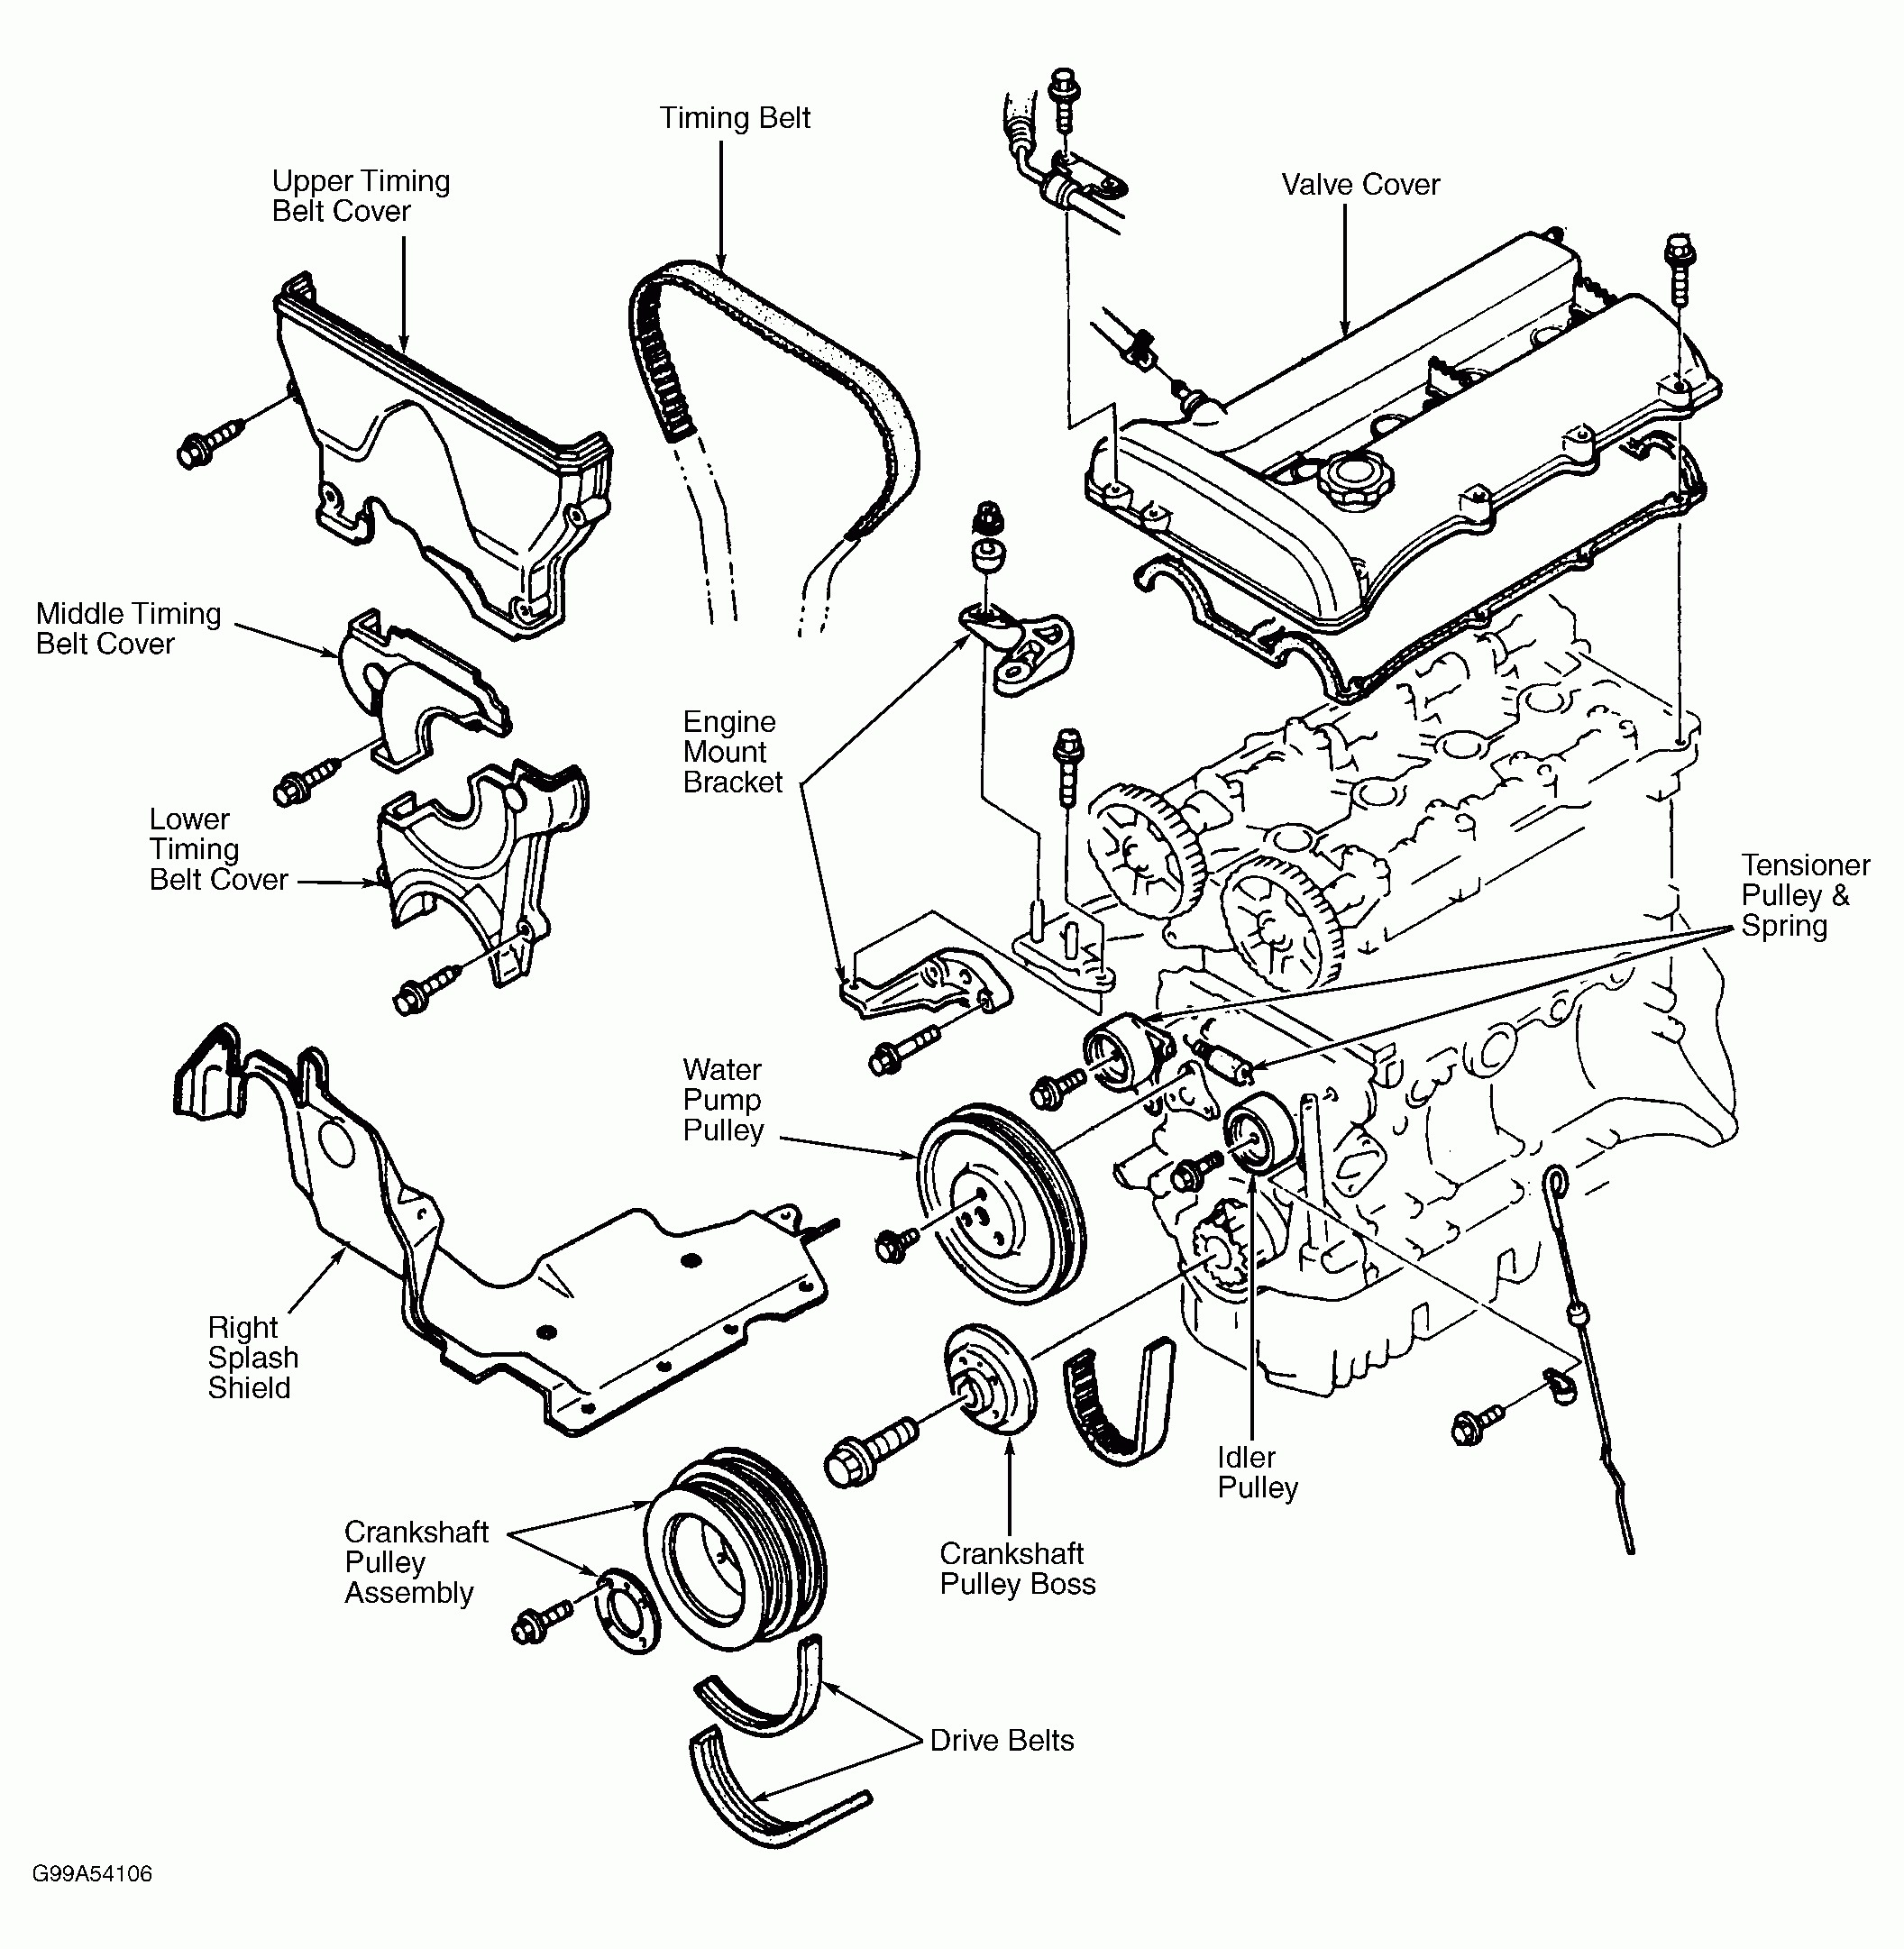 mazda protege 1 6 engine diagram - wiring diagram sit-silverado -  sit-silverado.disnar.it  disnar.it